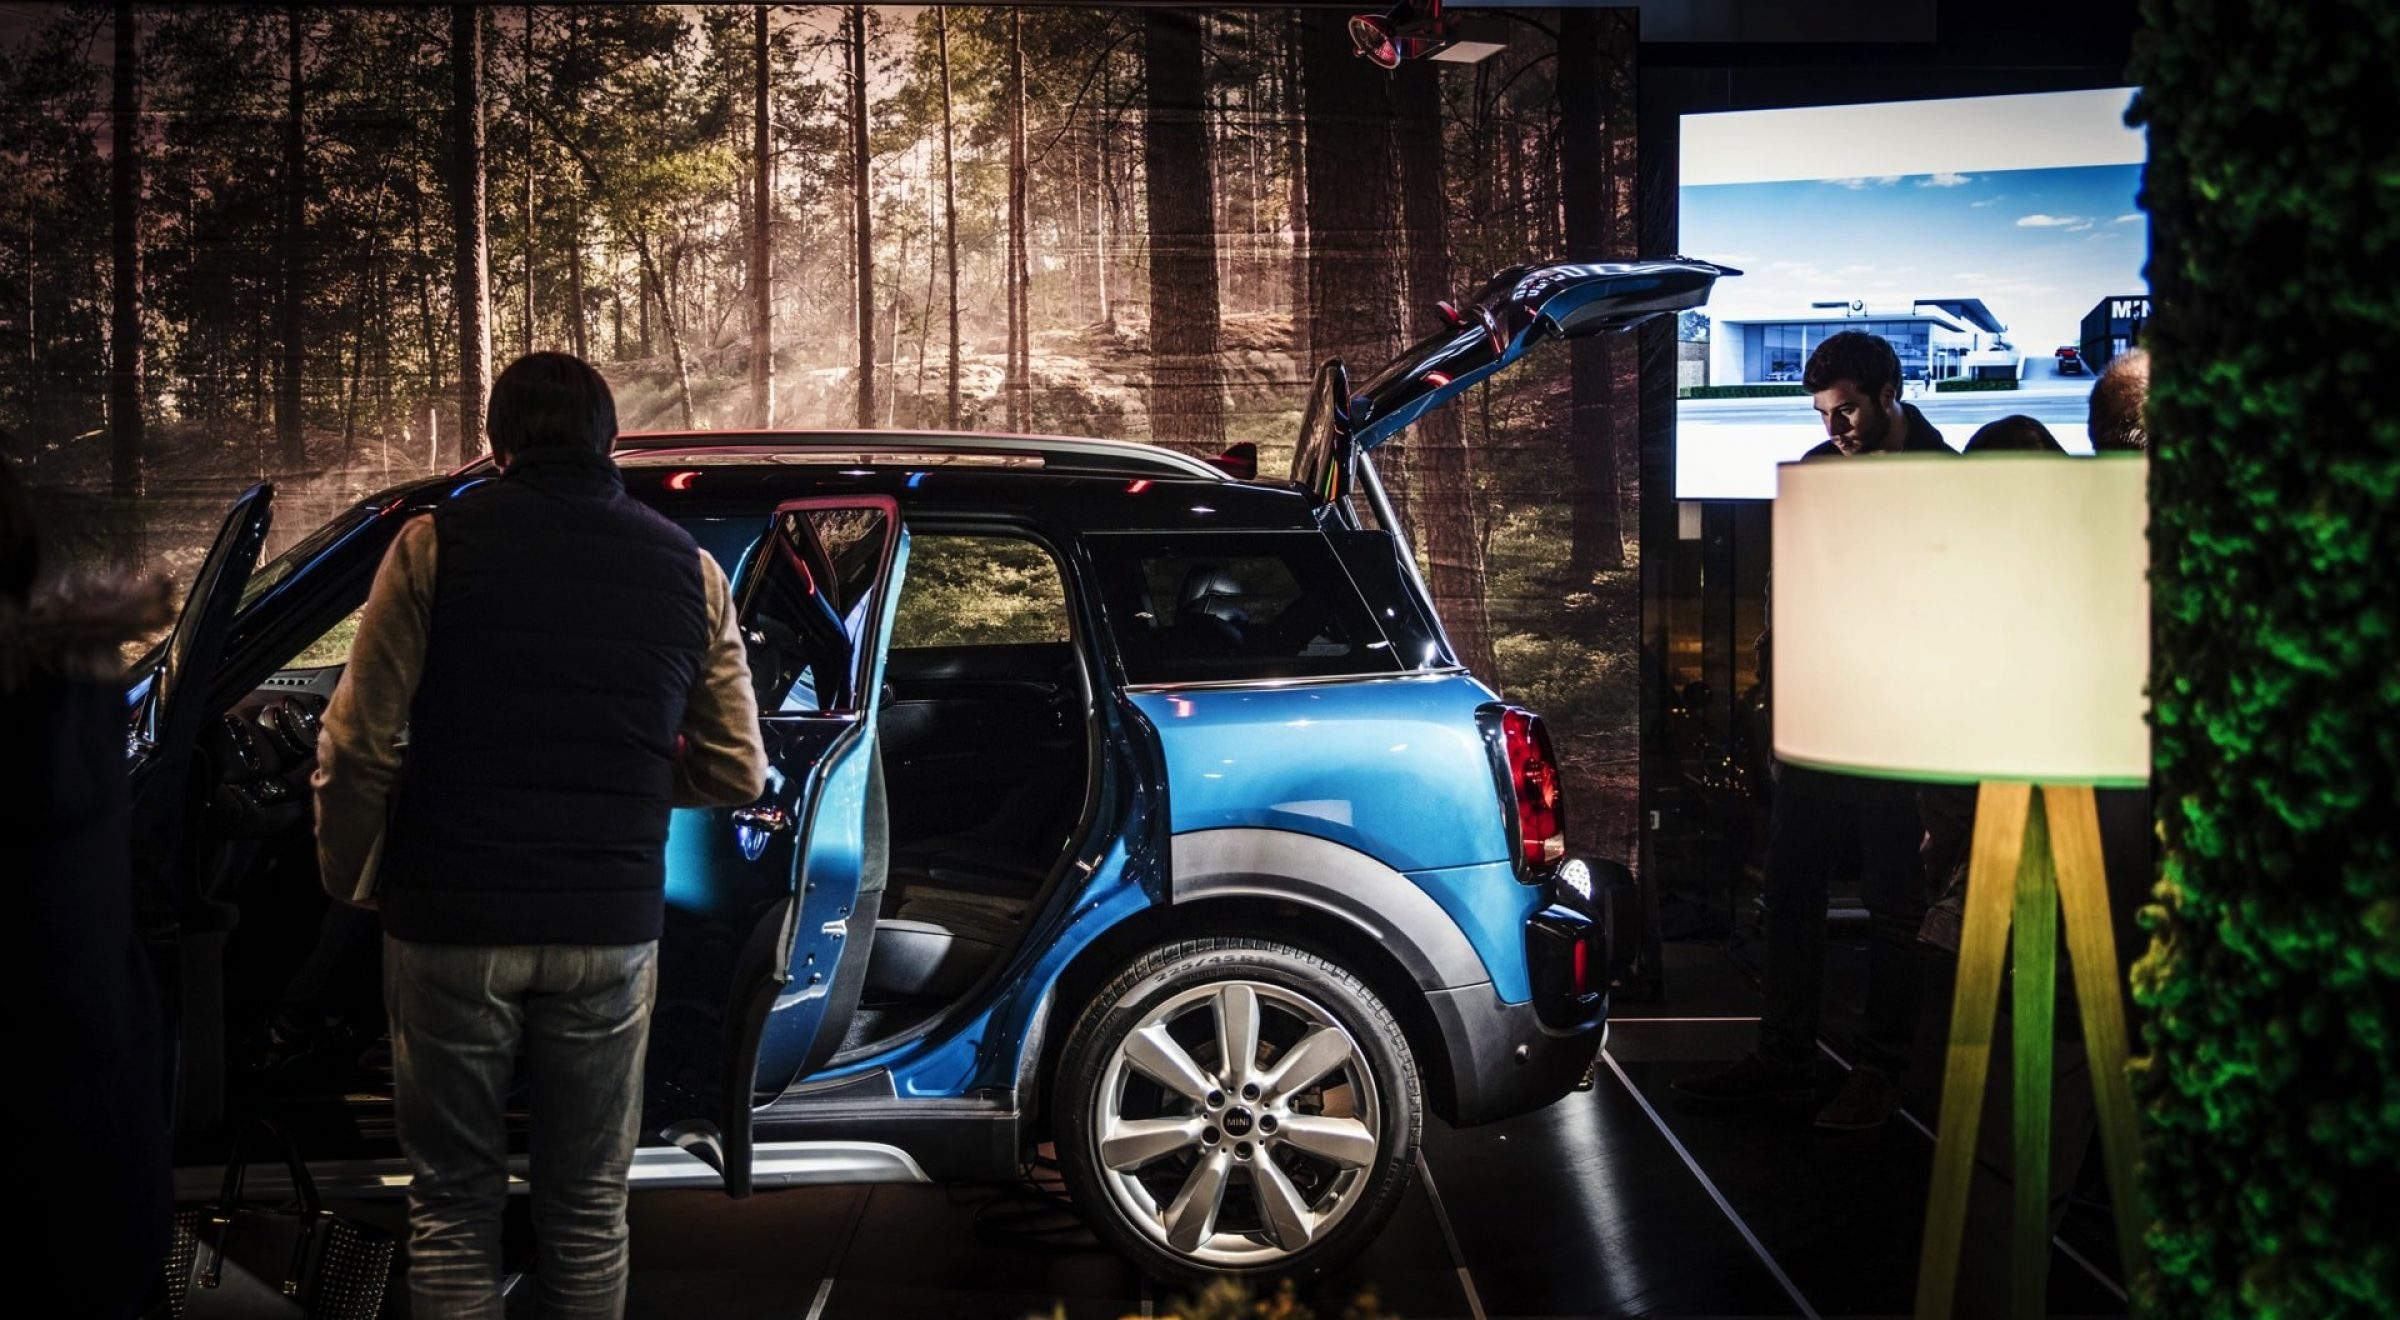 Fast Forward Evenementenbureau Gent Mini Dealer Conventie Countryman Productactivatiemini Countryman 4